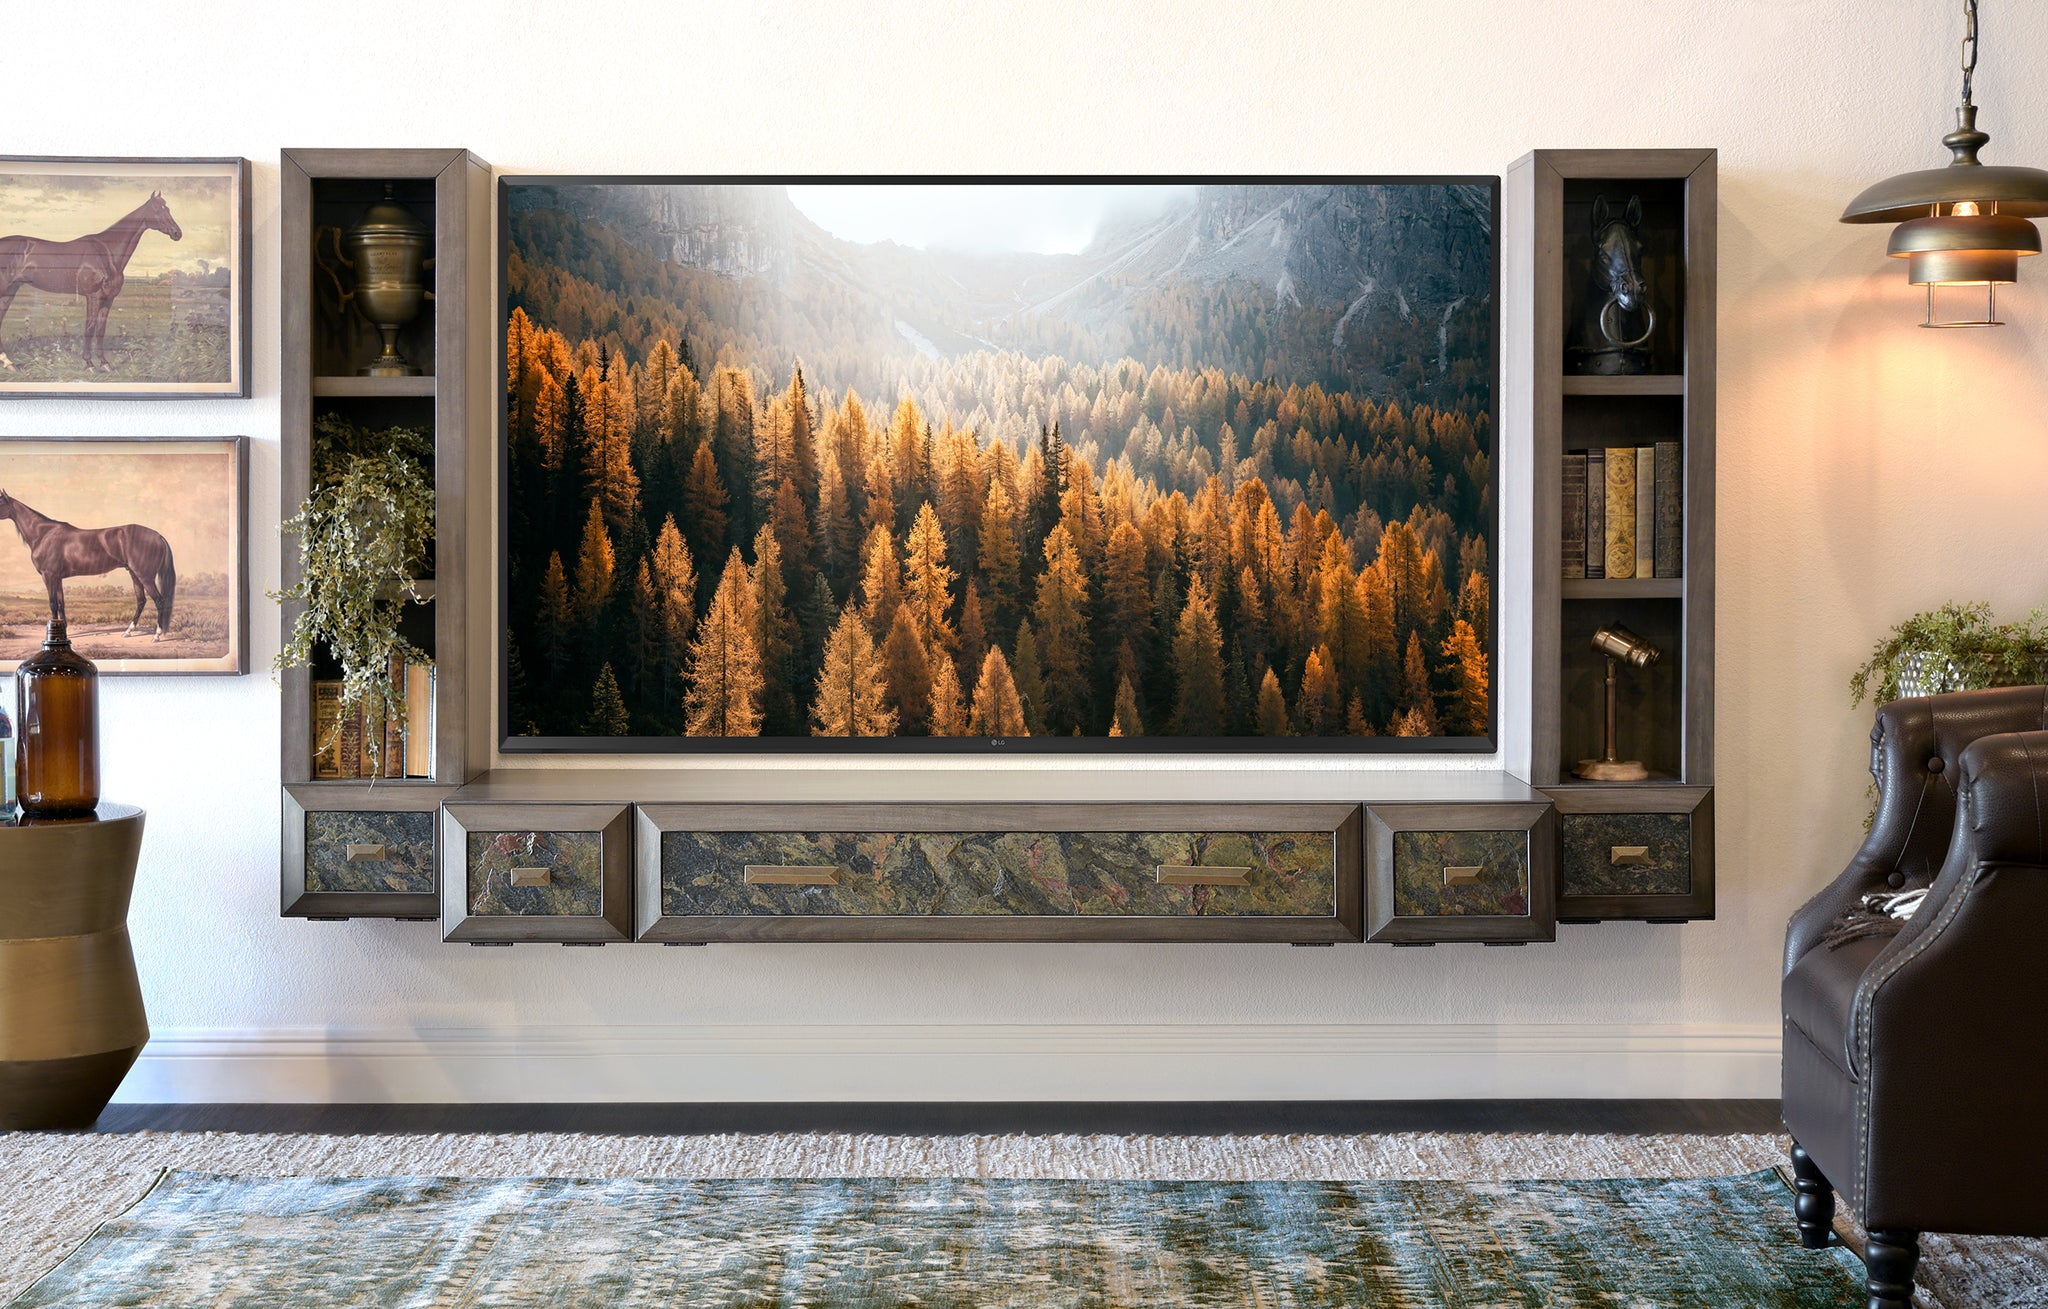 Gray Floating TV Stand Wall Mount Entertainment Center With Stone - Jupiter - Greystone